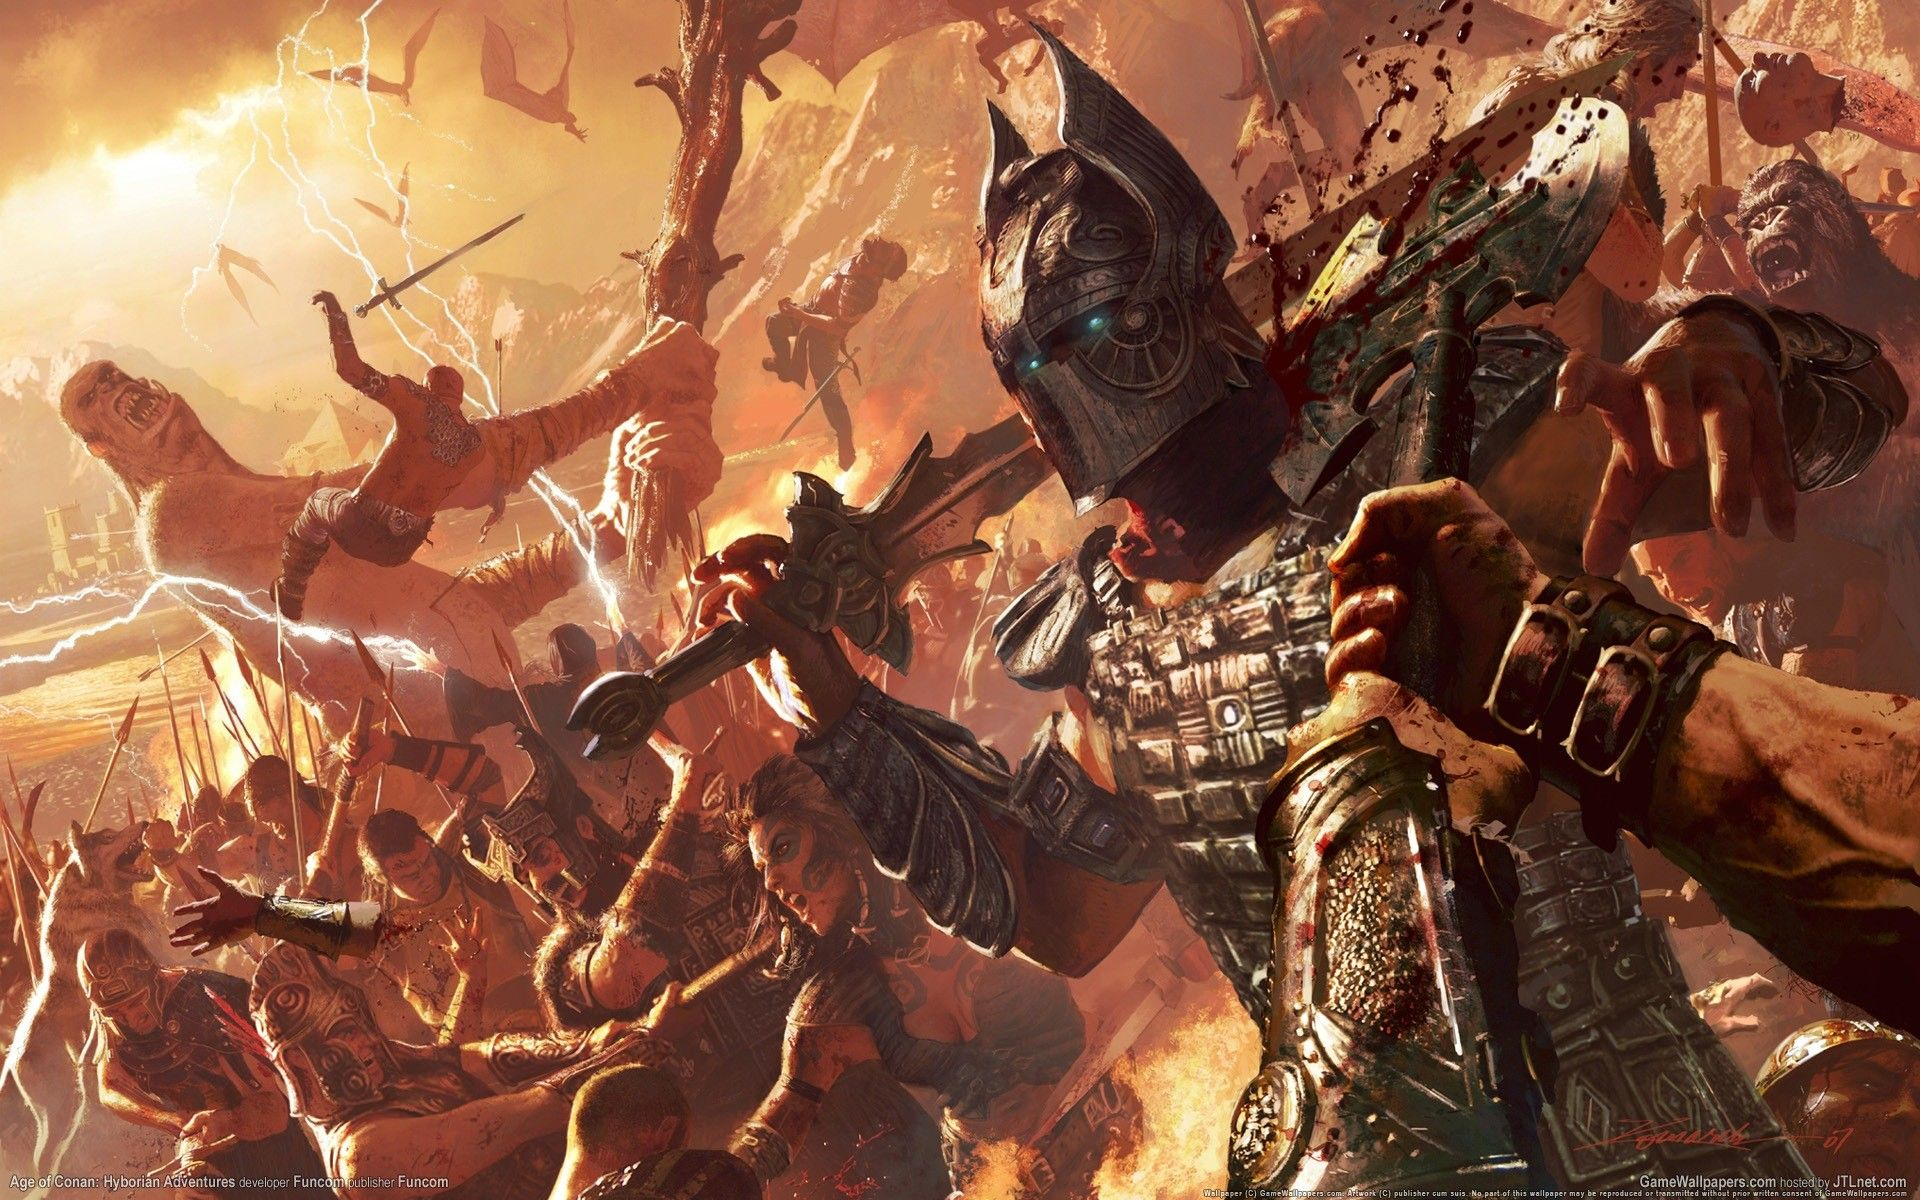 Epic Battle Wallpapers - Top Free Epic Battle Backgrounds ...